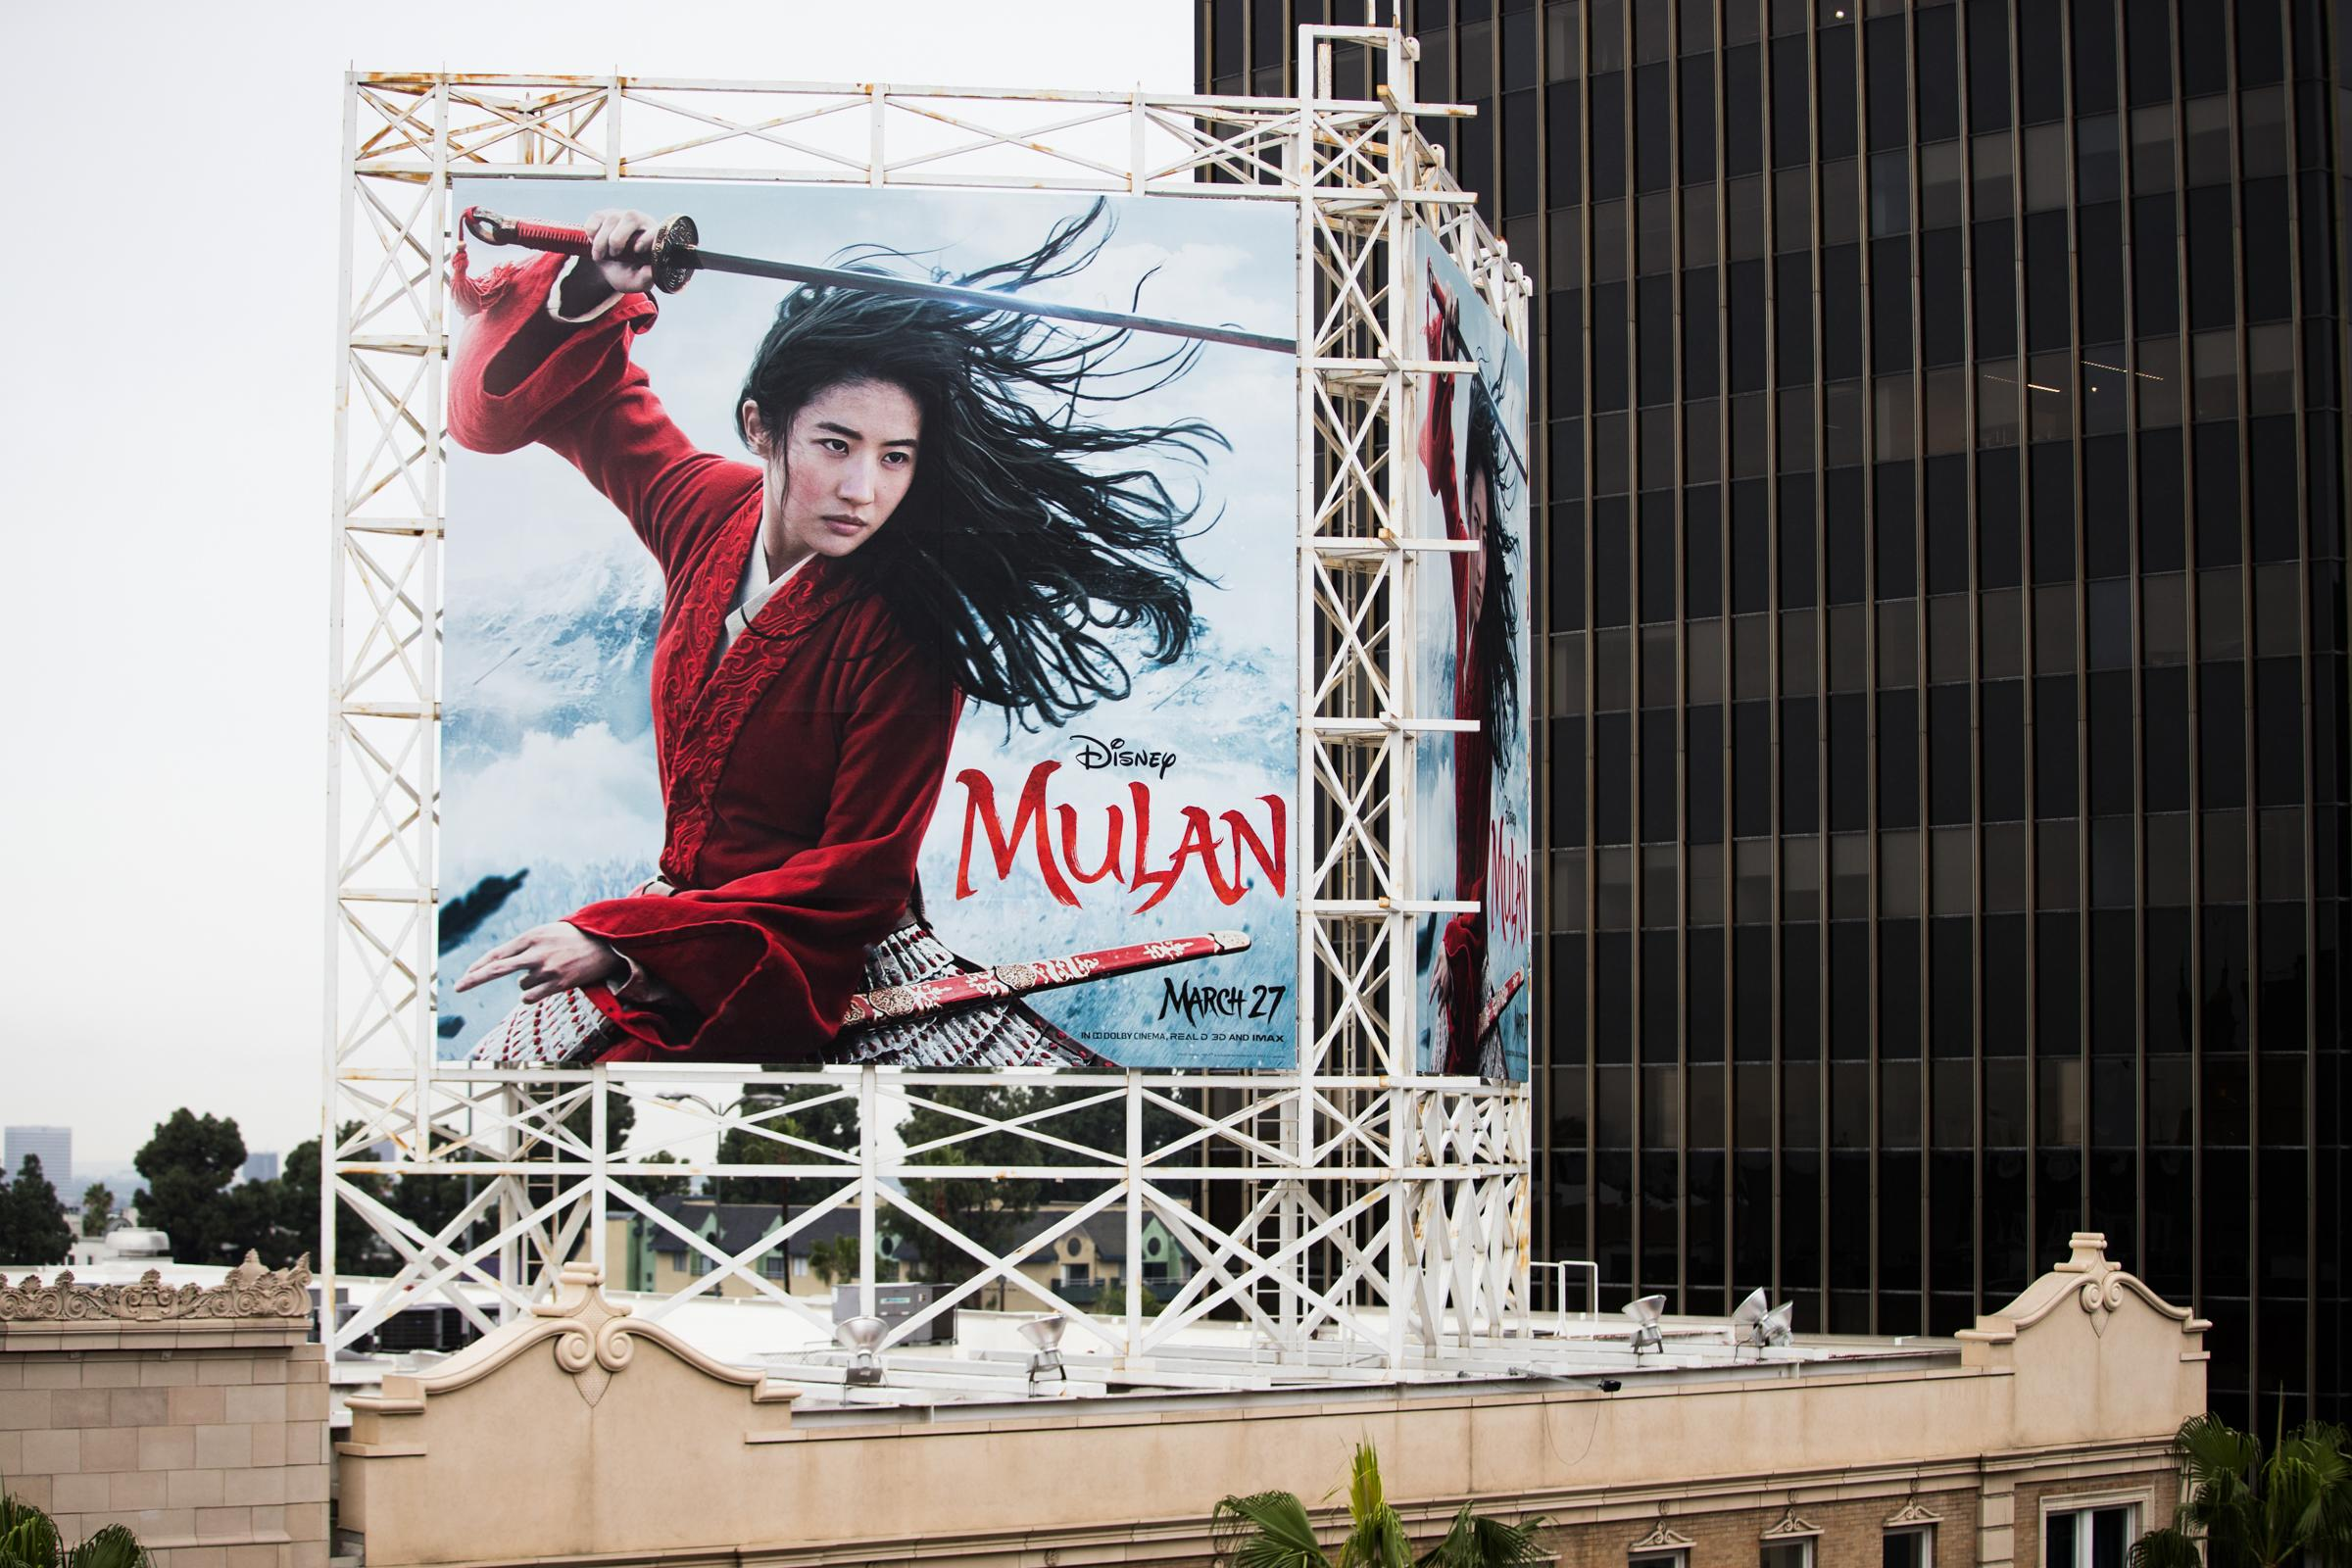 Disney's 'Mulan' will look to Christopher Nolan's 'Tenet' as a movie theater health test